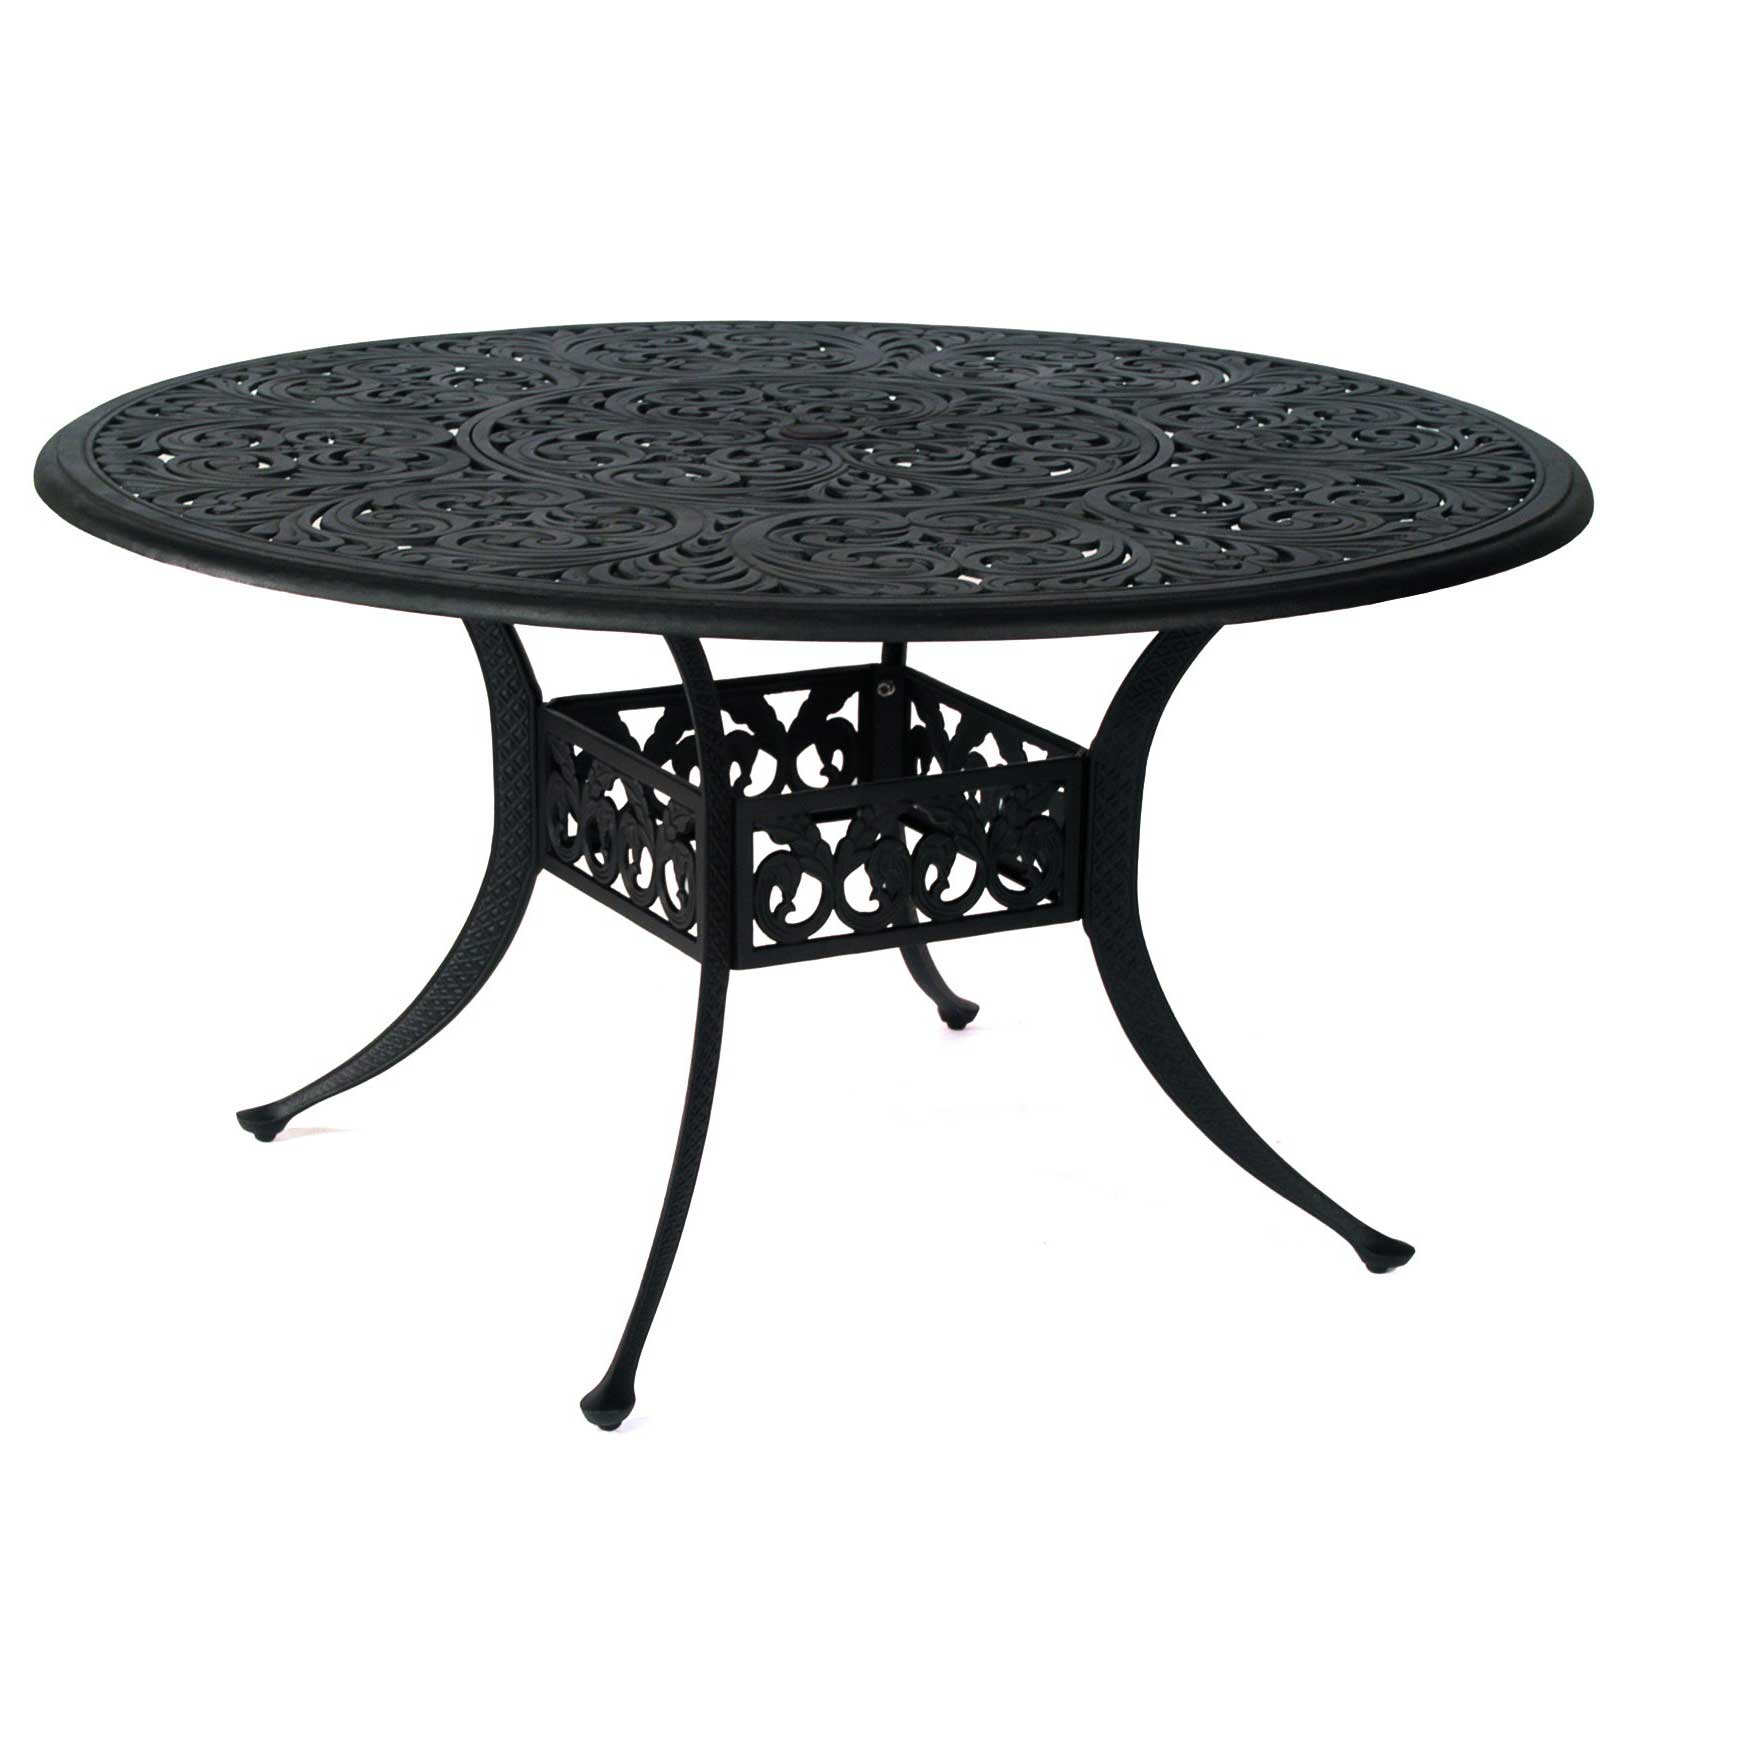 "Hanamint Mayfair 48"" Round Dining Table Outdoor Furniture"